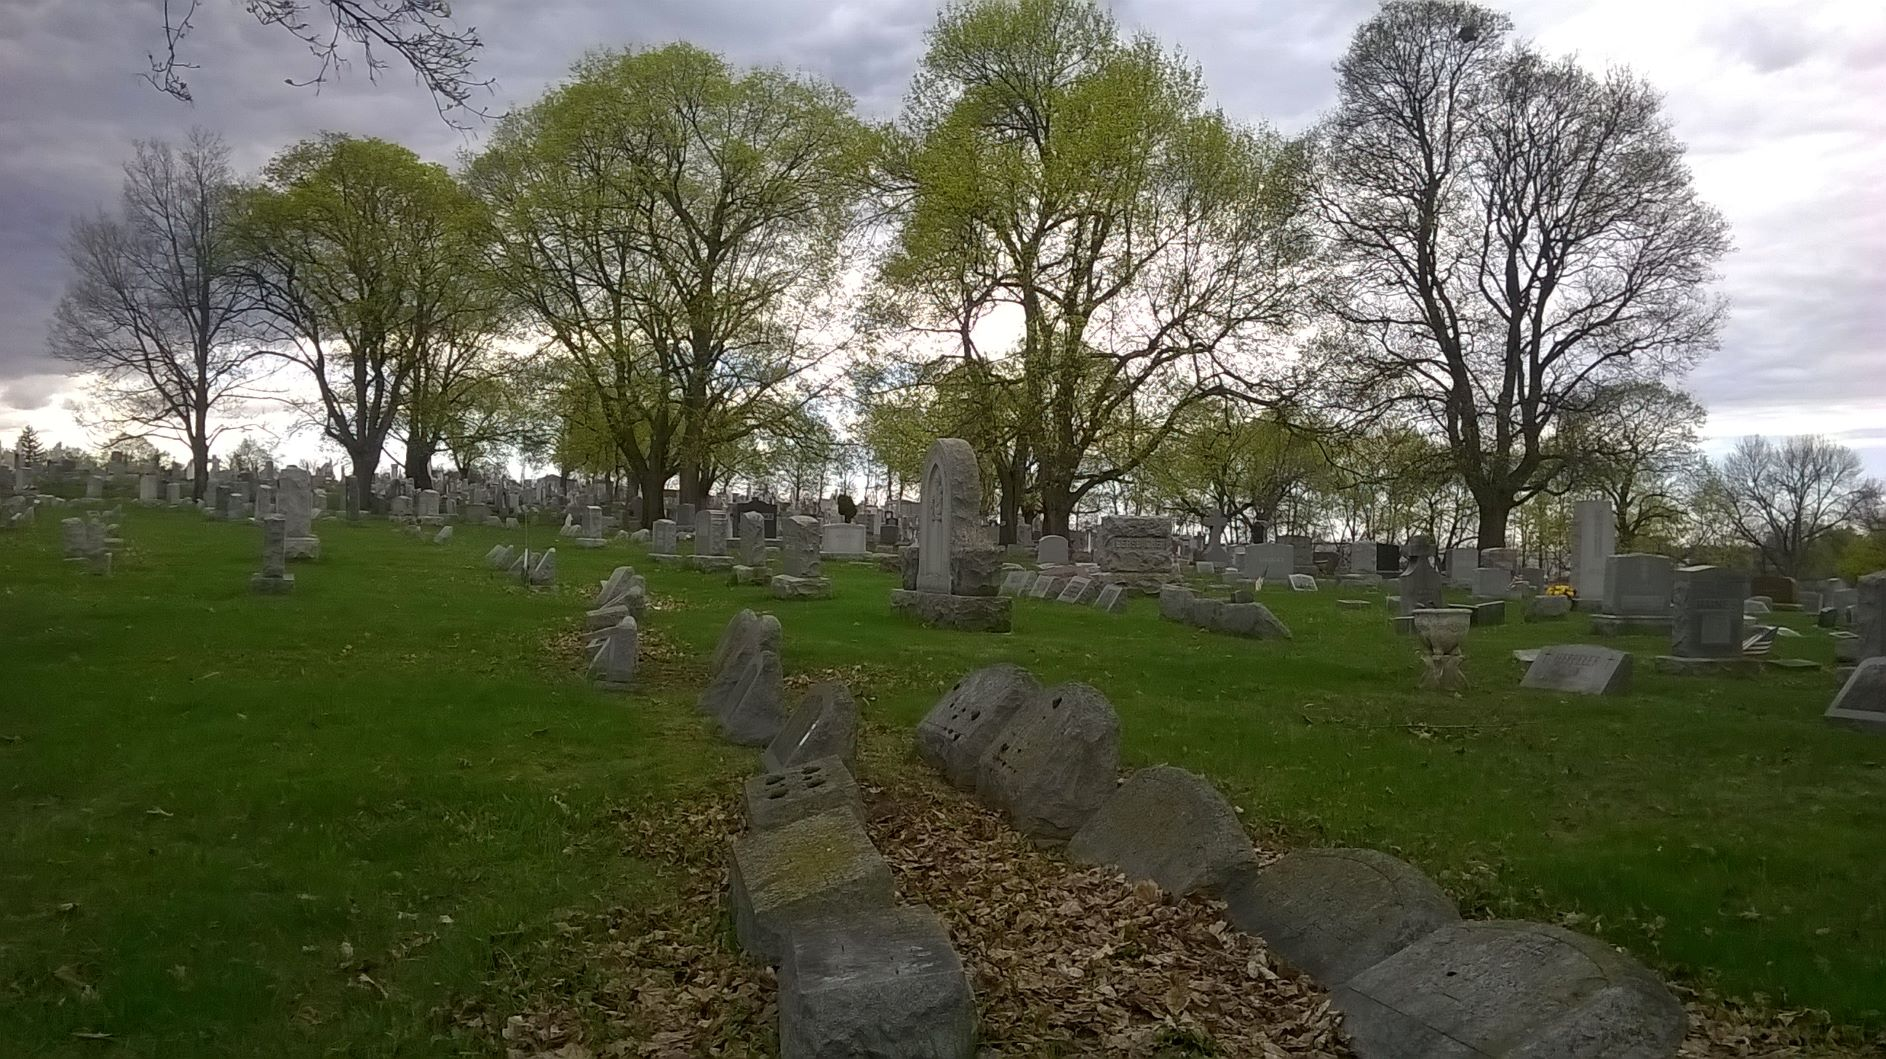 Researching Cemetery details